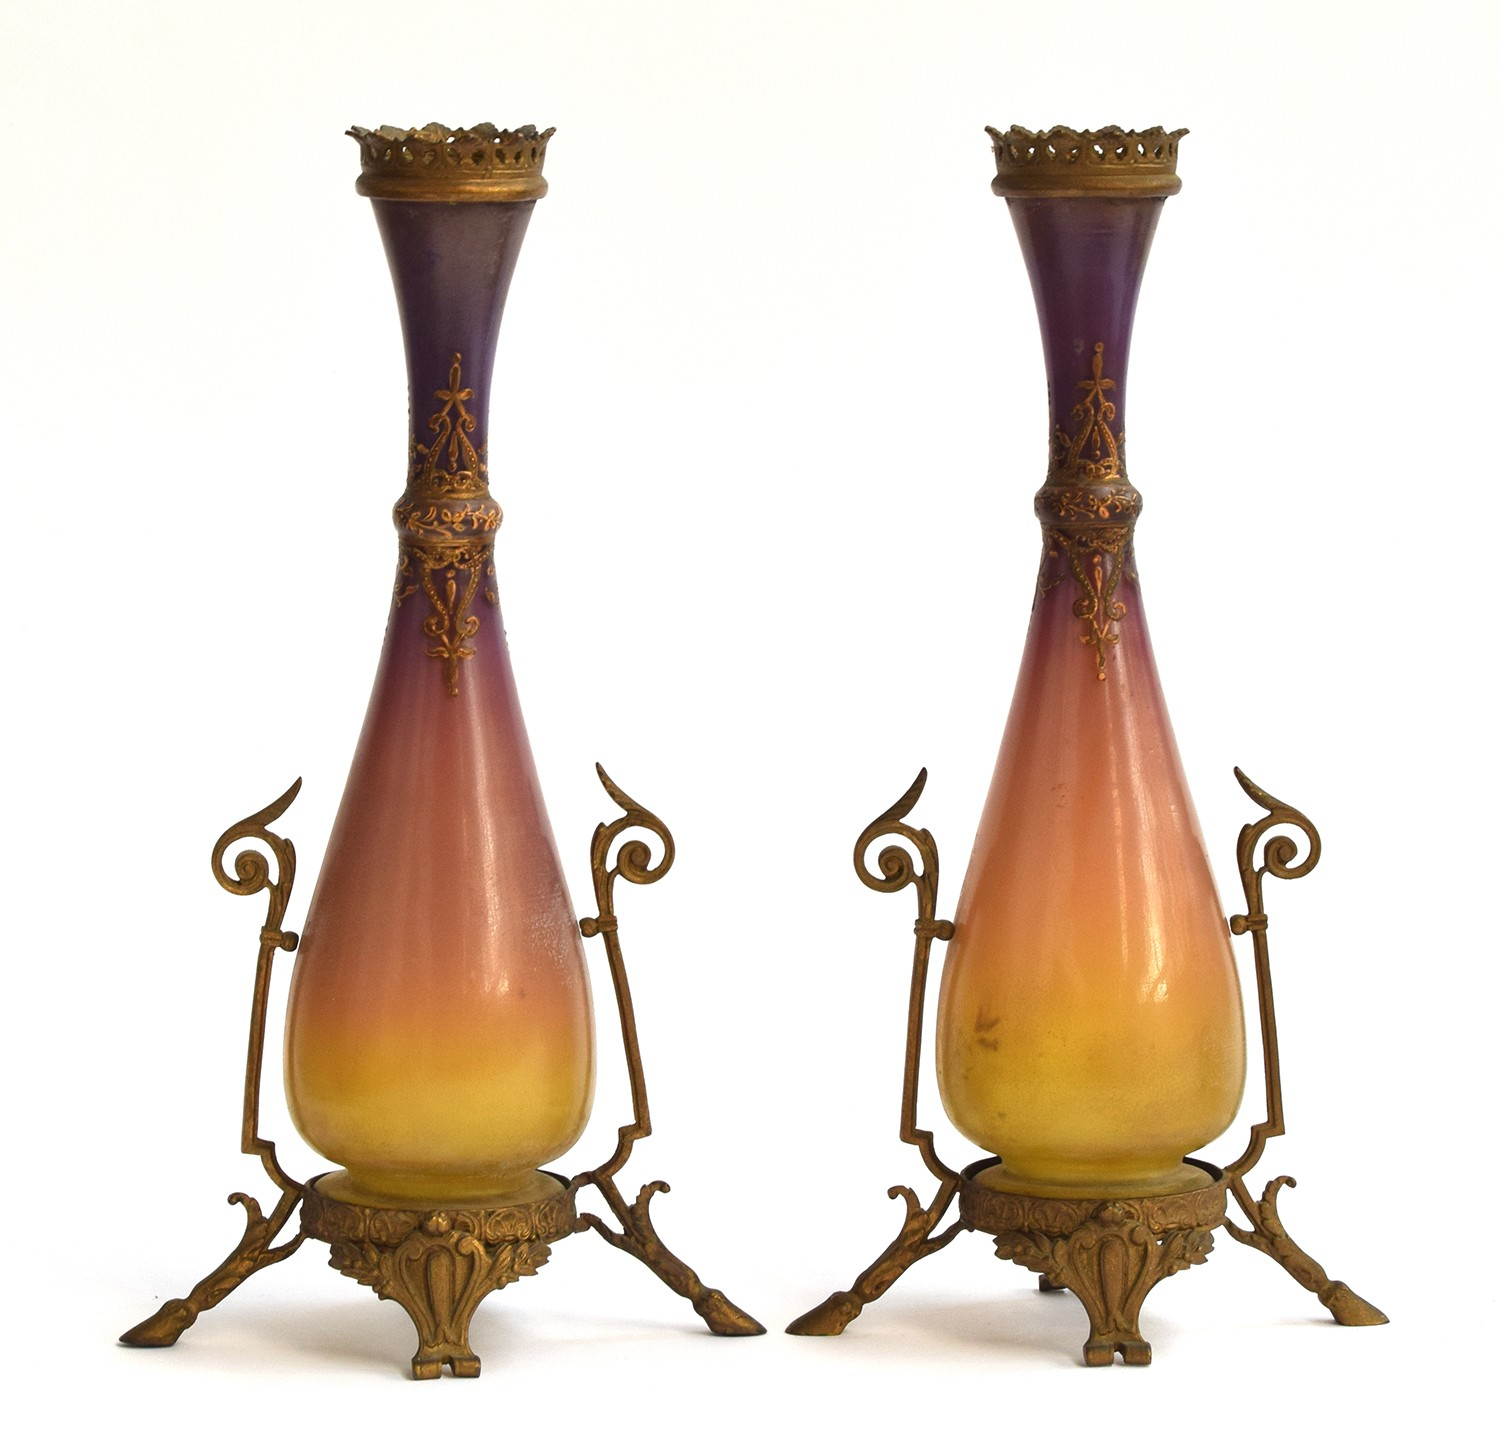 A pair of Jugendstil glass and brass vases, purple and ochre graduating glass, with scrolling enamel